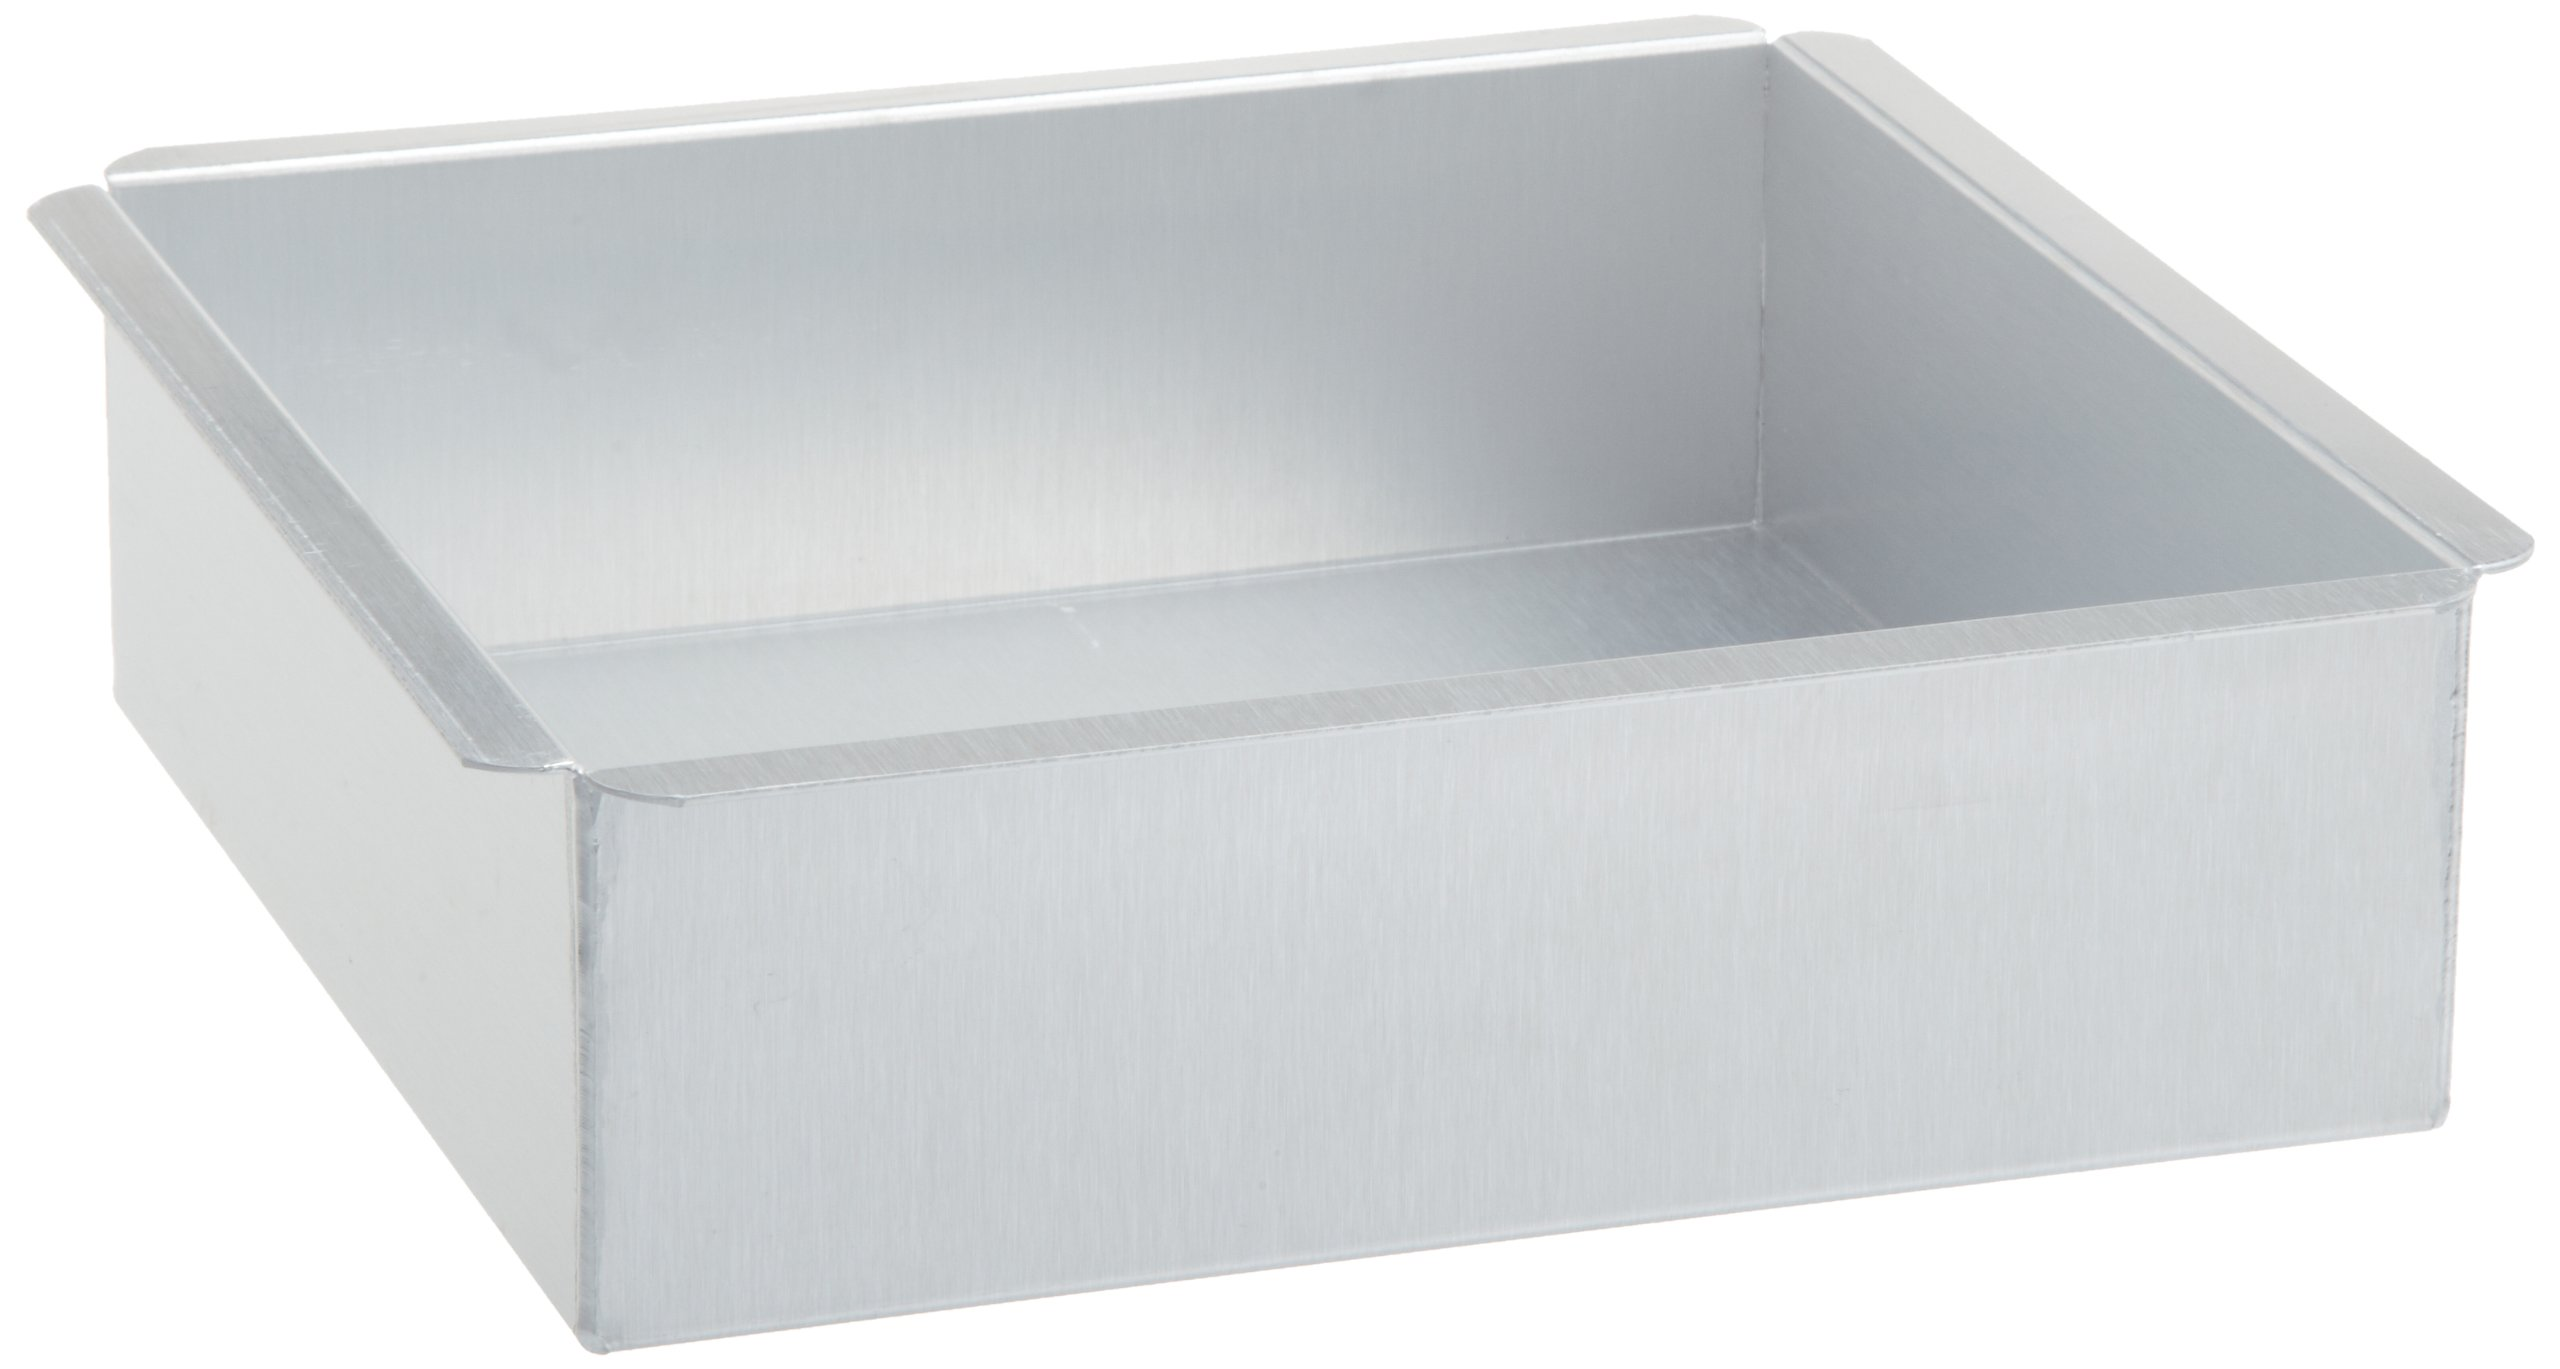 Ateco 10 by 10 by 3-Inch Professional Square Baking Pan